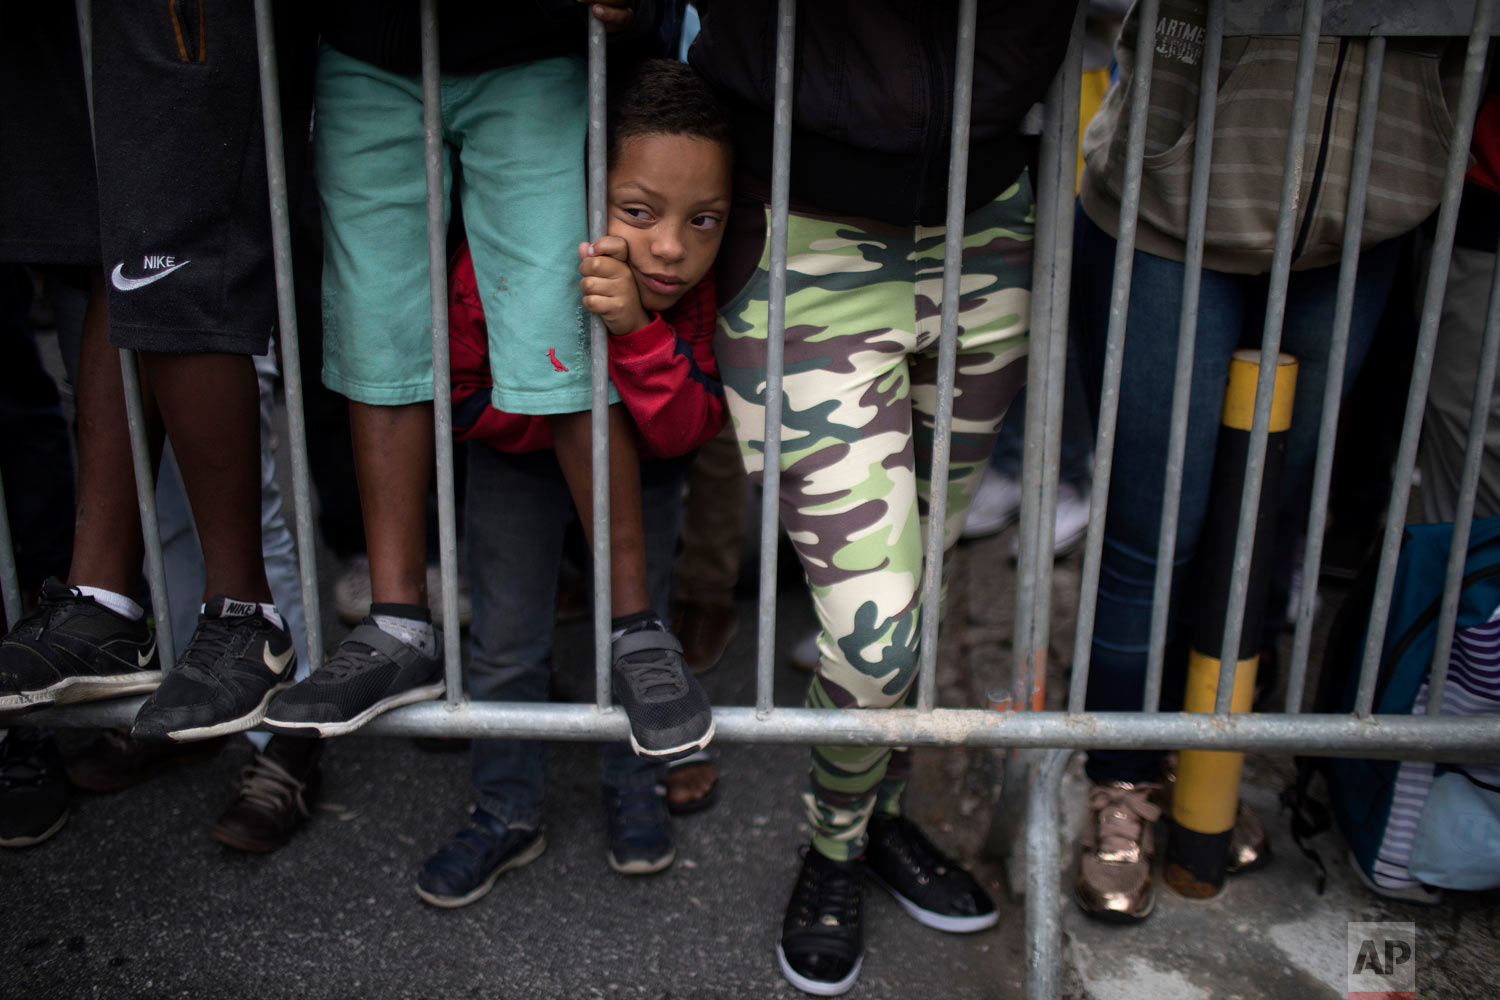 In this May 23, 2018 photo, a boy squeezes between people's legs as he waits outside the Granja Comary training center for a chance to see Brazil's national soccer team in Teresopolis, Brazil. (AP Photo/Leo Correa)